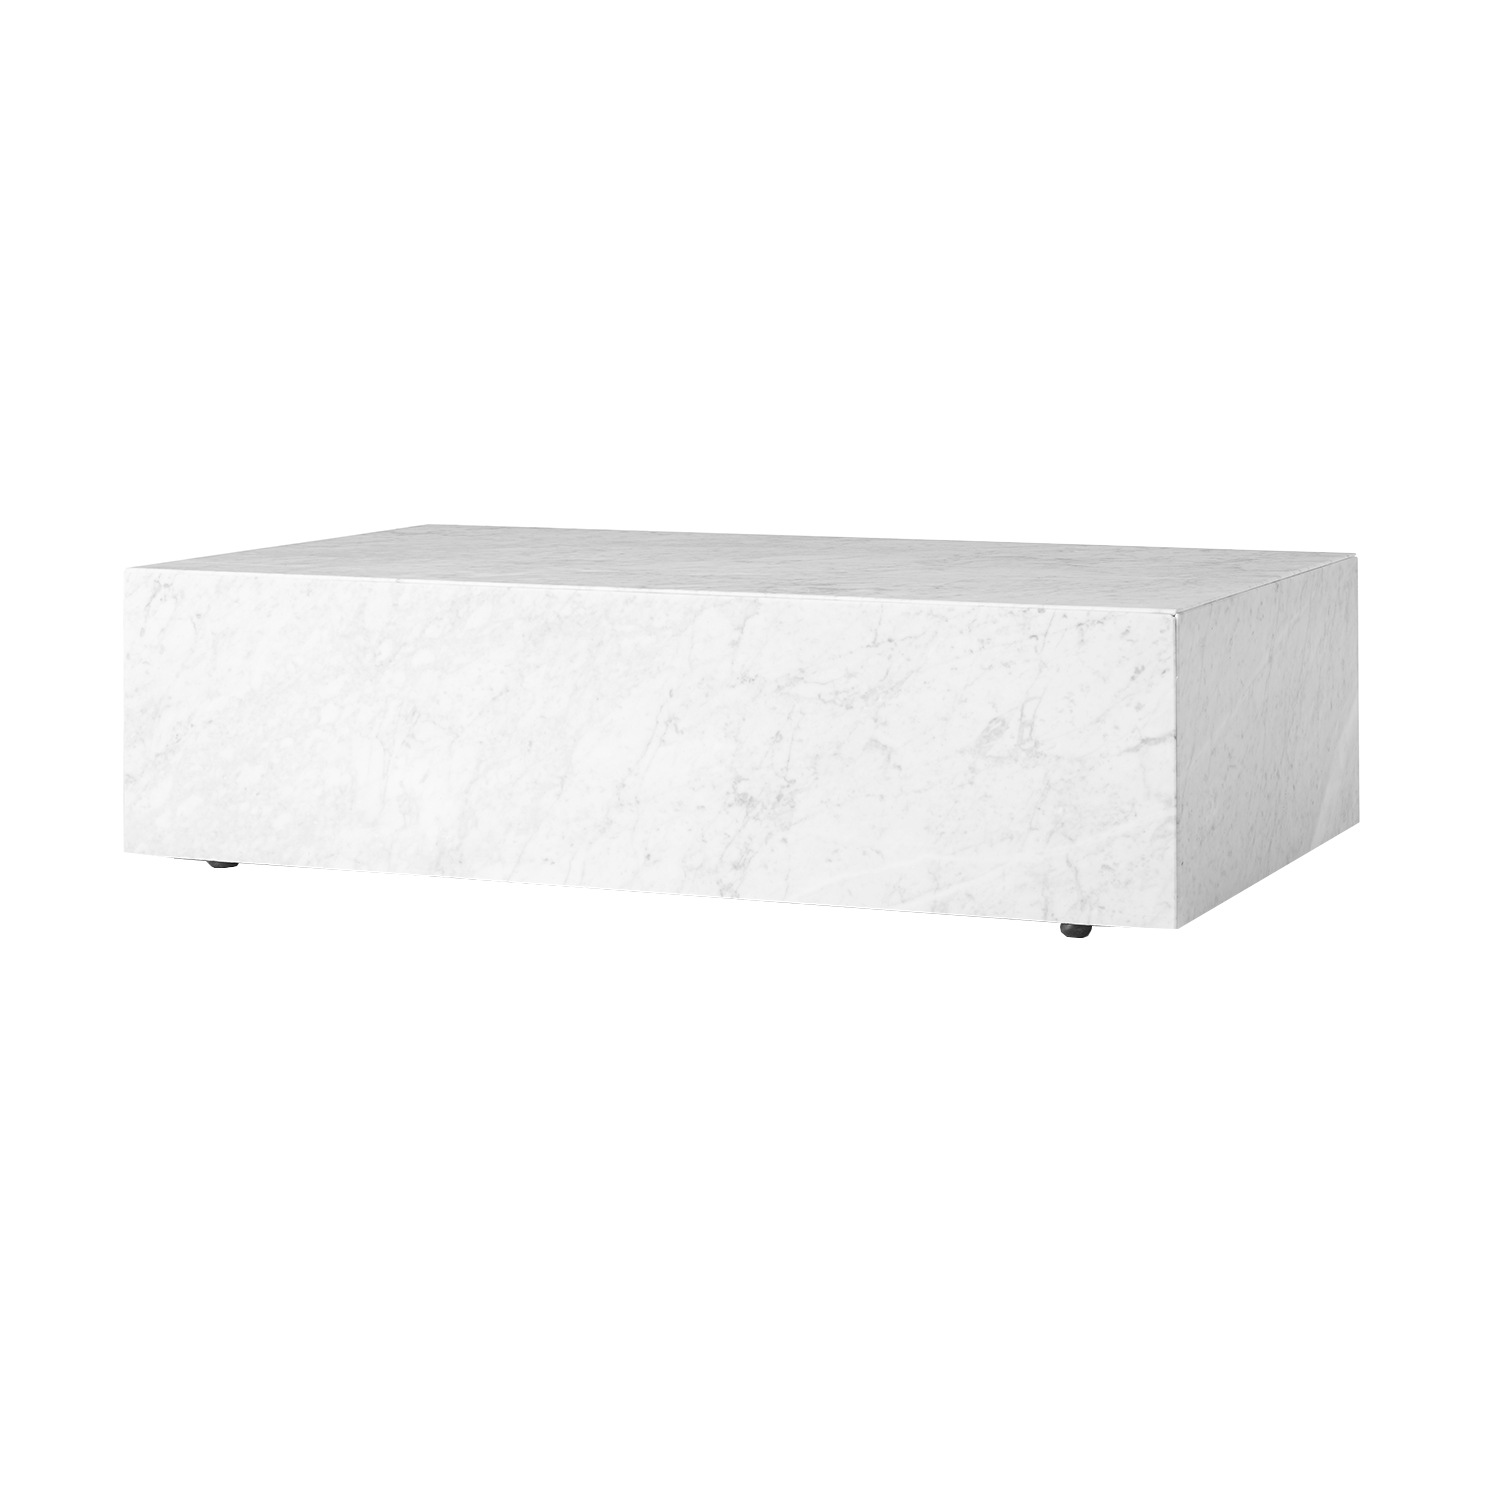 Plinth low soffbord, vit marmor